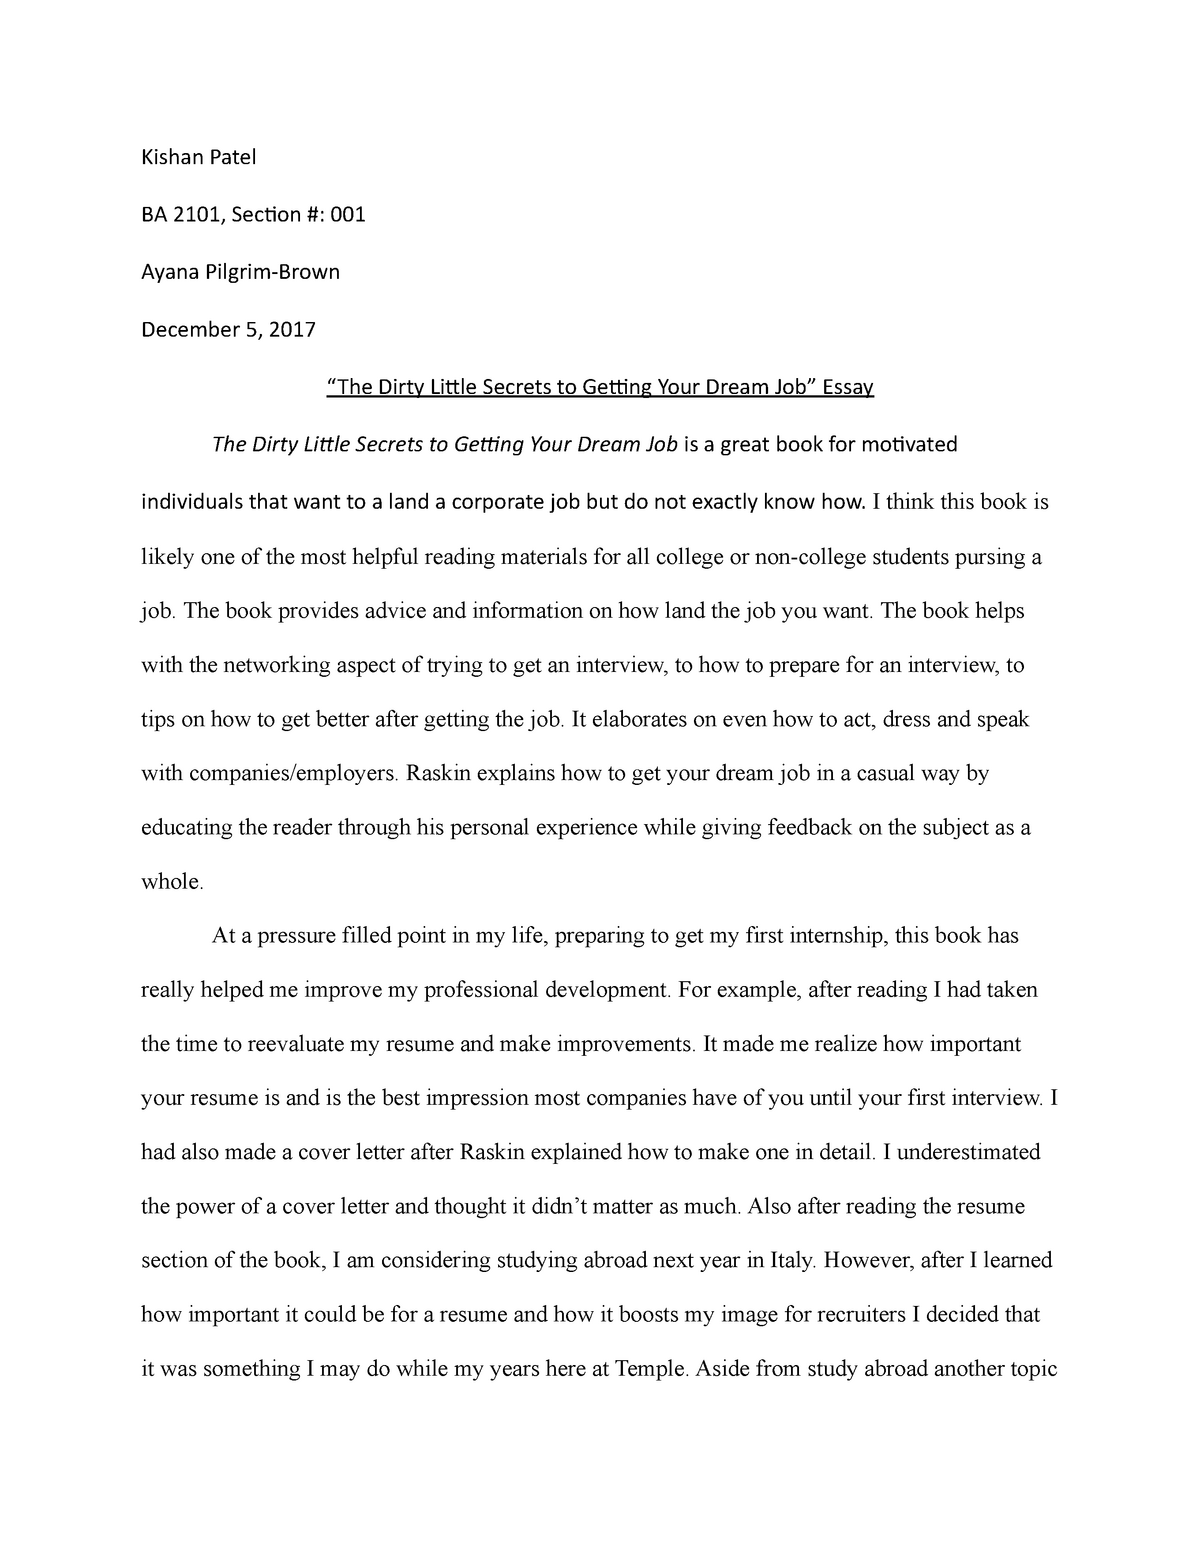 High School Essays Topics  How To Write An Essay High School also Essay On Health And Fitness Essay My Dream Job With Essay About My Future Dreams Papers  Thesis For A Persuasive Essay